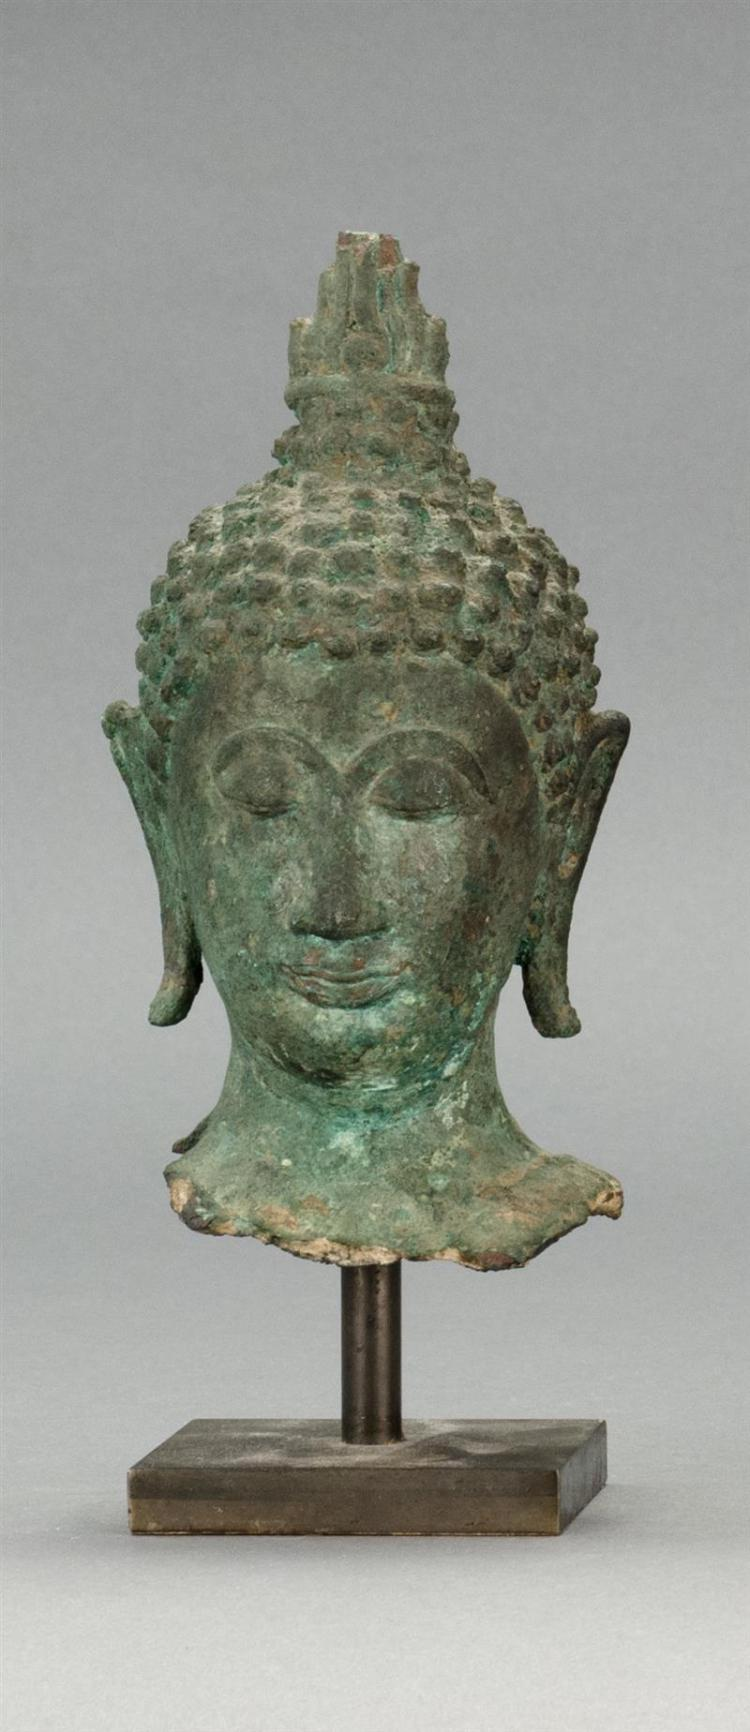 BRONZE HEAD OF BUDDHA With tightly curled hair knots, top knot, and elongated earlobes. In a green patina. Height 6.5